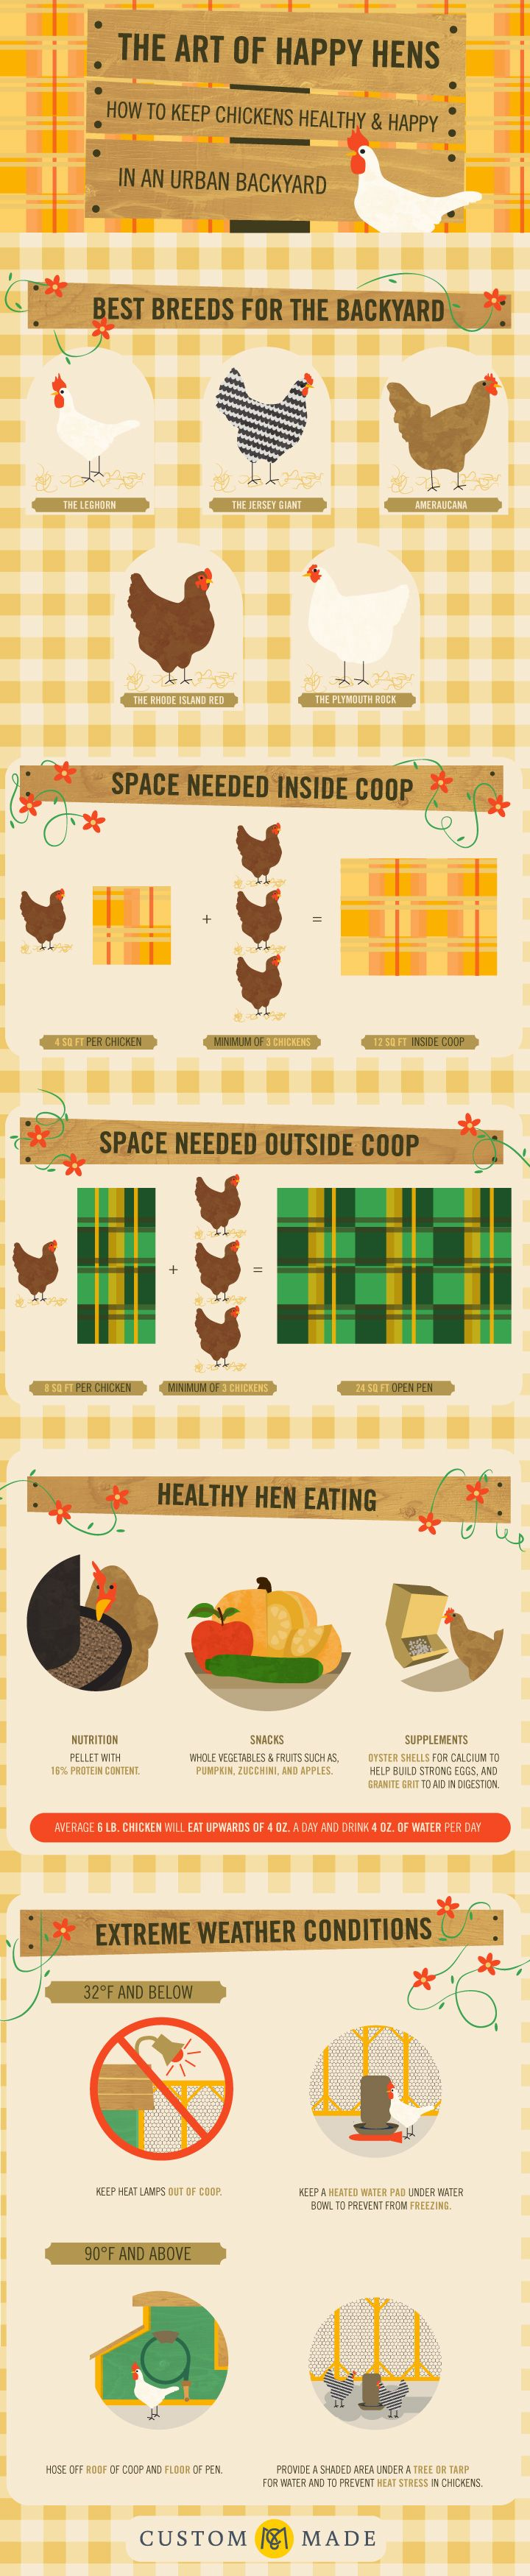 Keeping #chickens healthy and happy in an urban backyard.- Infographic